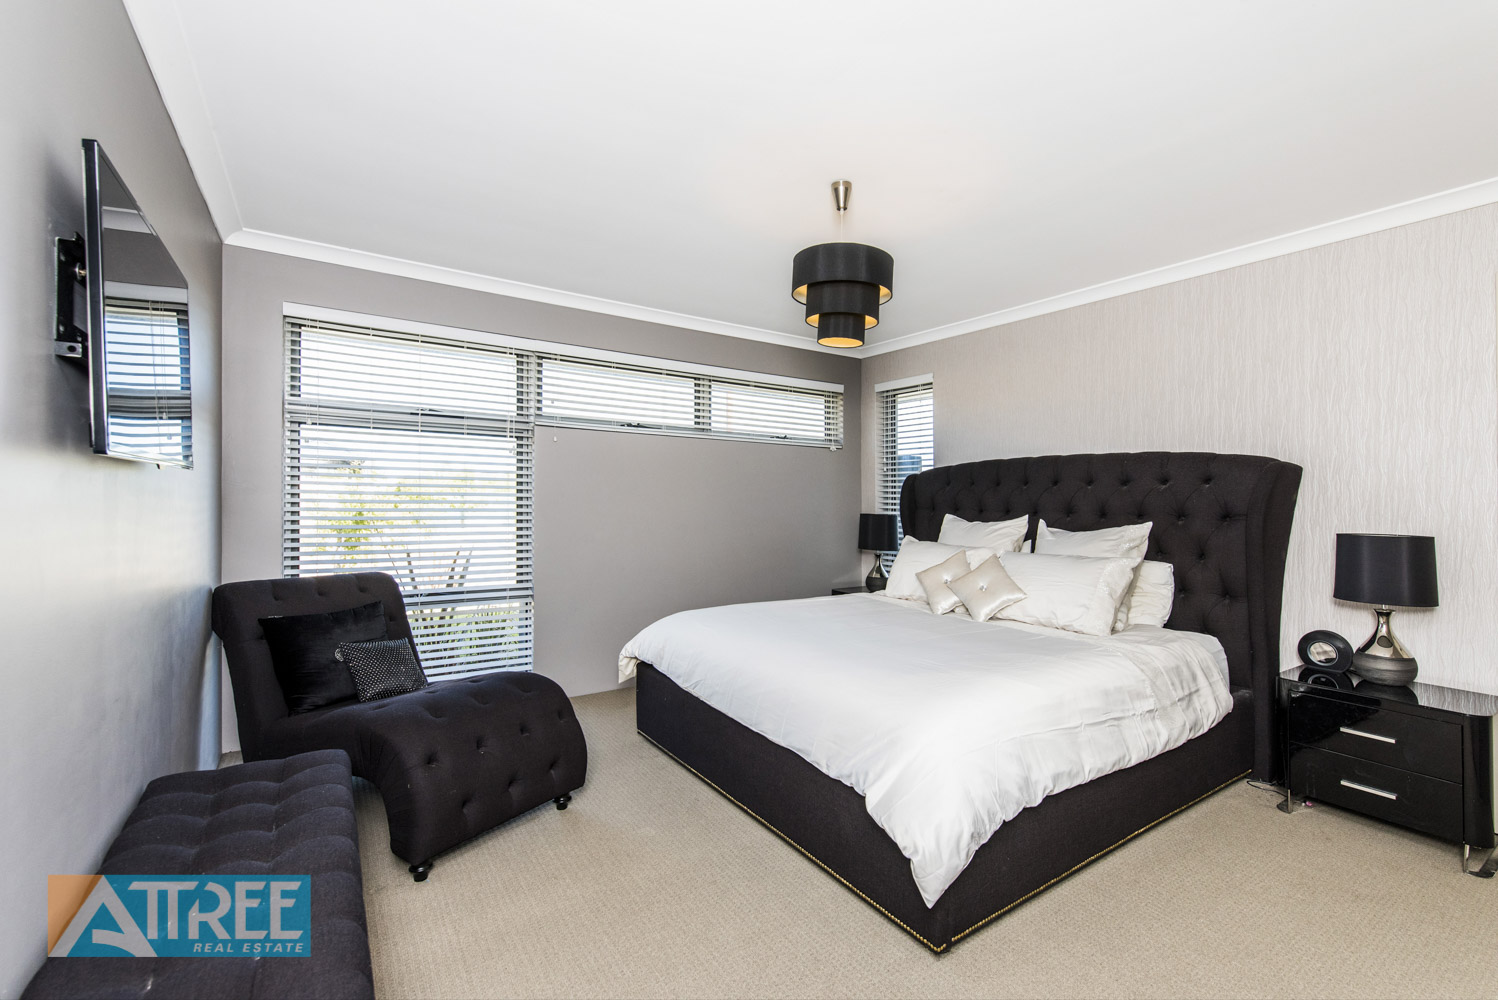 Property for sale in SOUTHERN RIVER, 2 St Agnes Green : Attree Real Estate